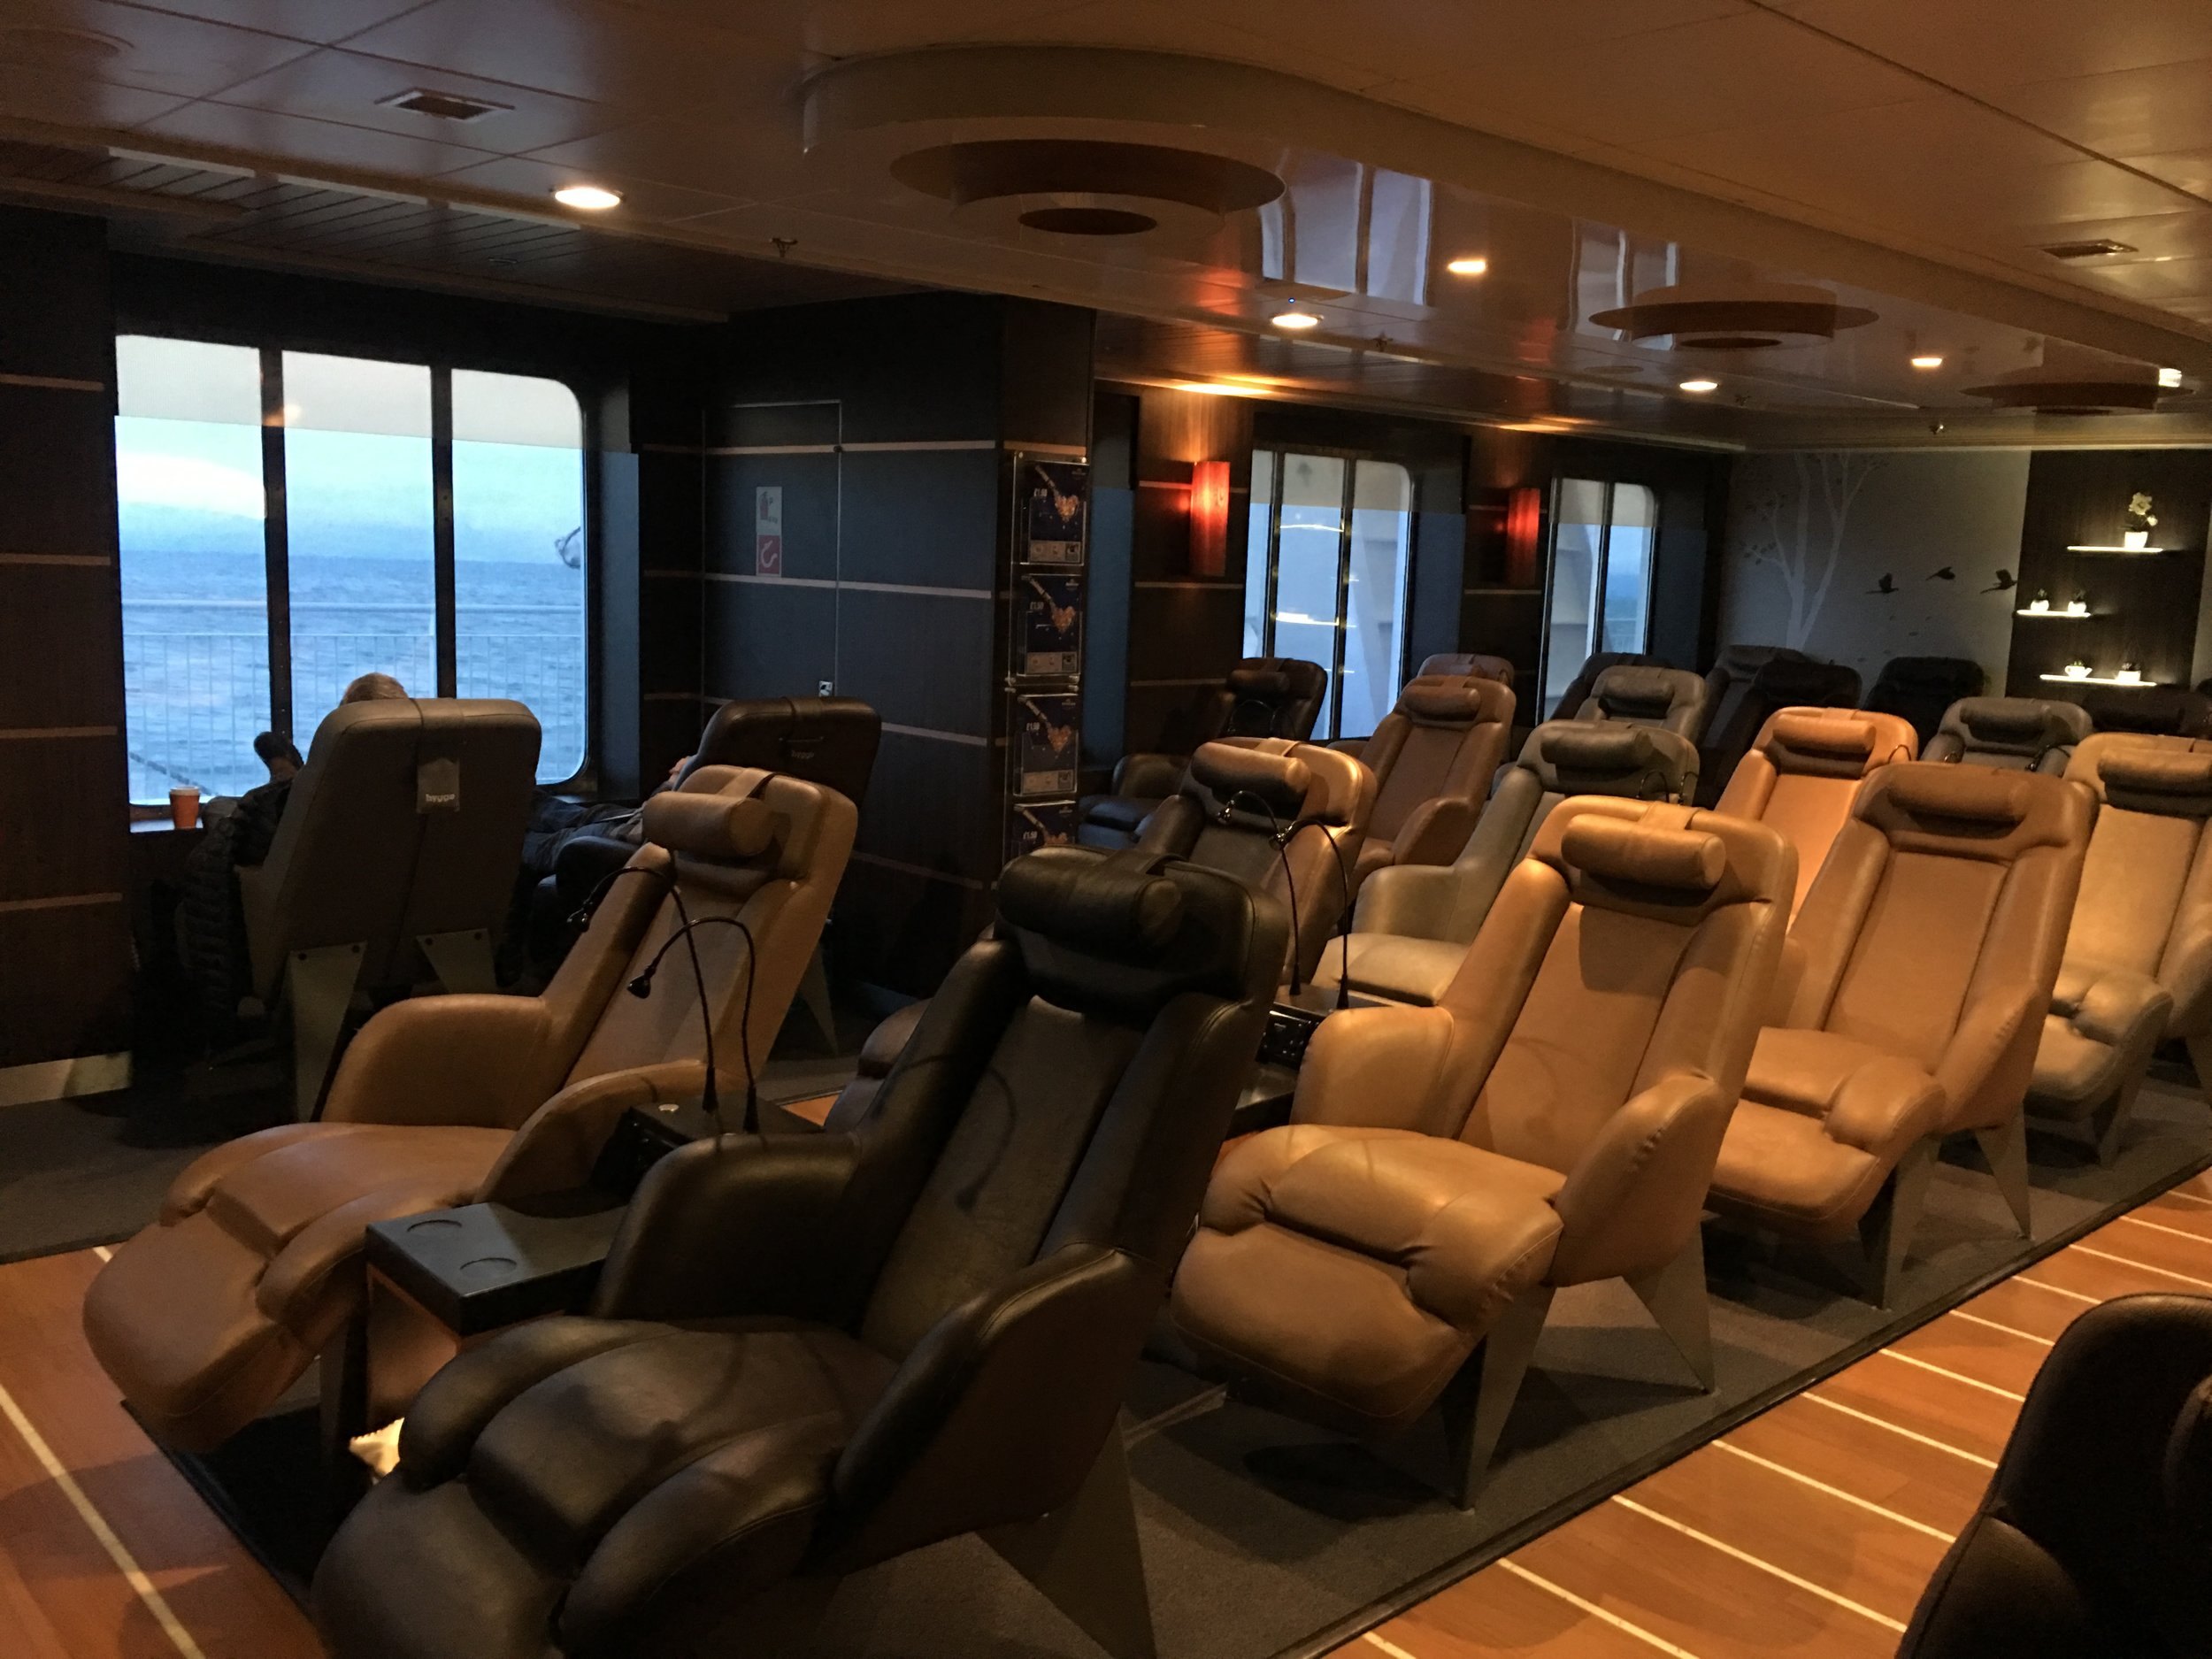 We upgraded to the reclining lounge. The ship had plenty of great seating but this was a special bonus!